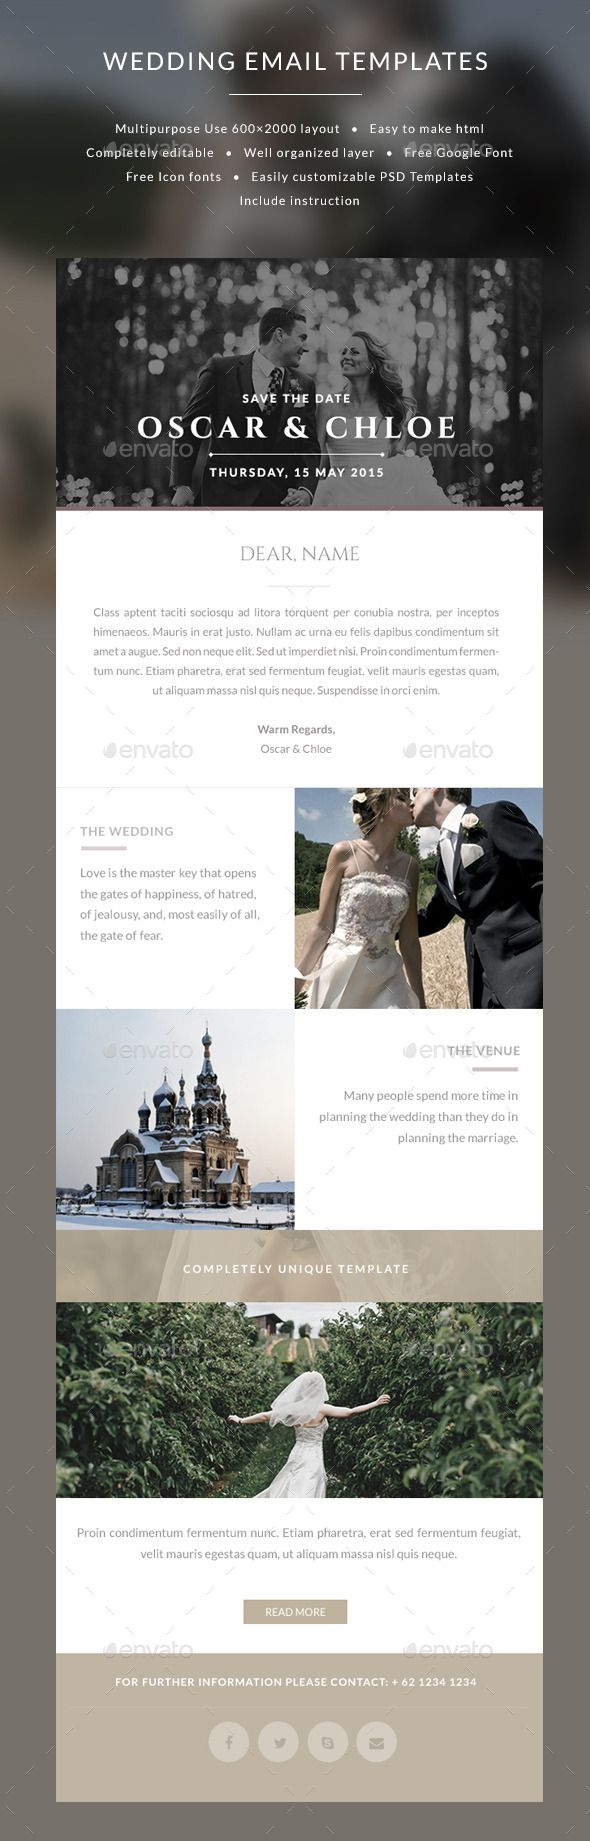 Email Wedding Invitation Templates  Oscar  Invitation Templates